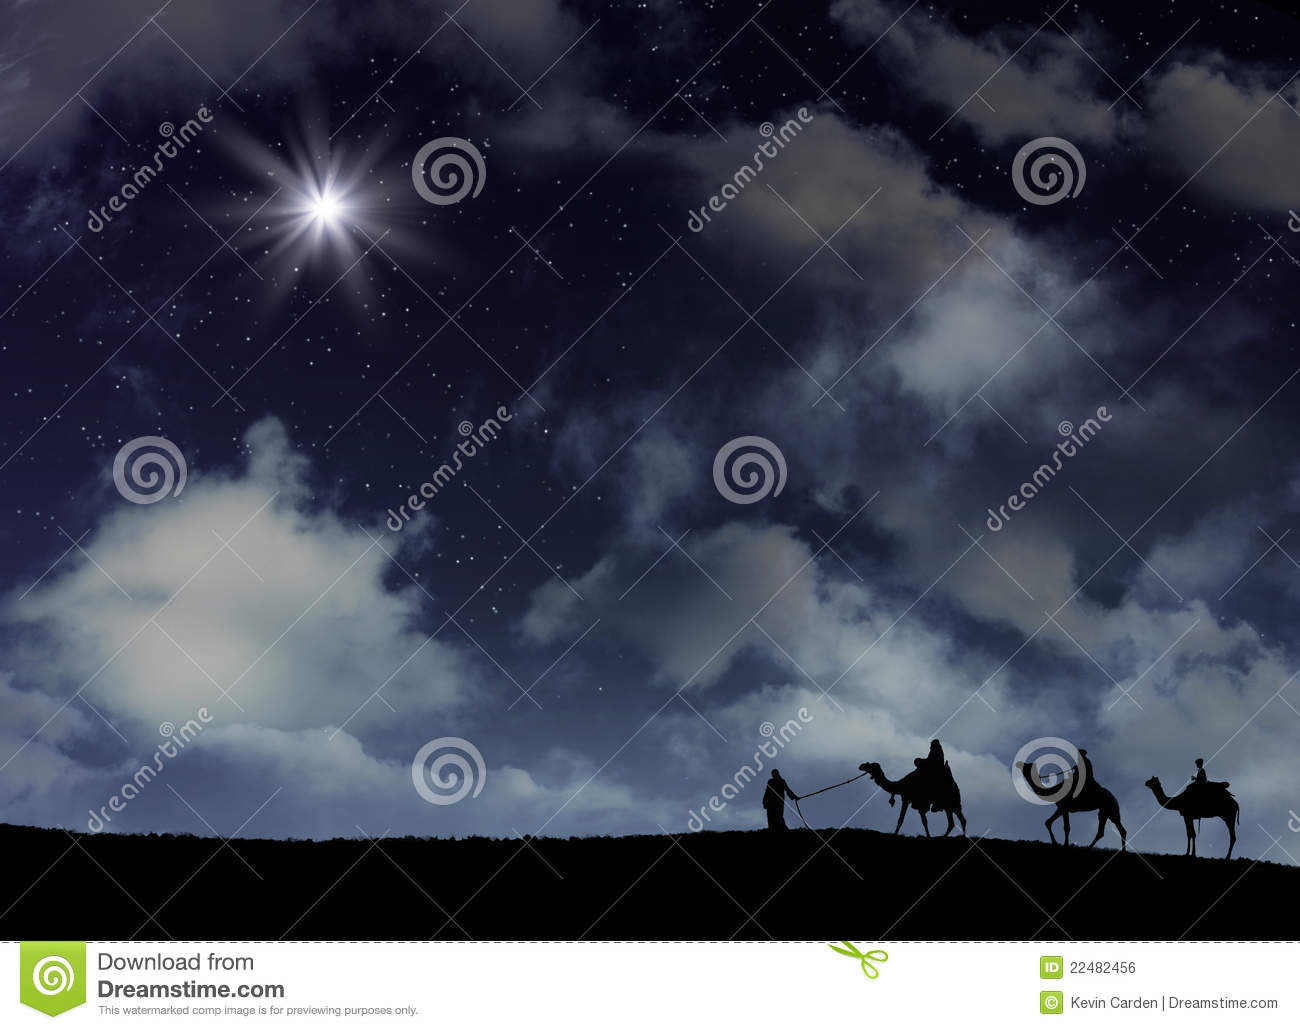 The Star Of Bethlehem On A Snowy Night Stock Photo Image Of Storm